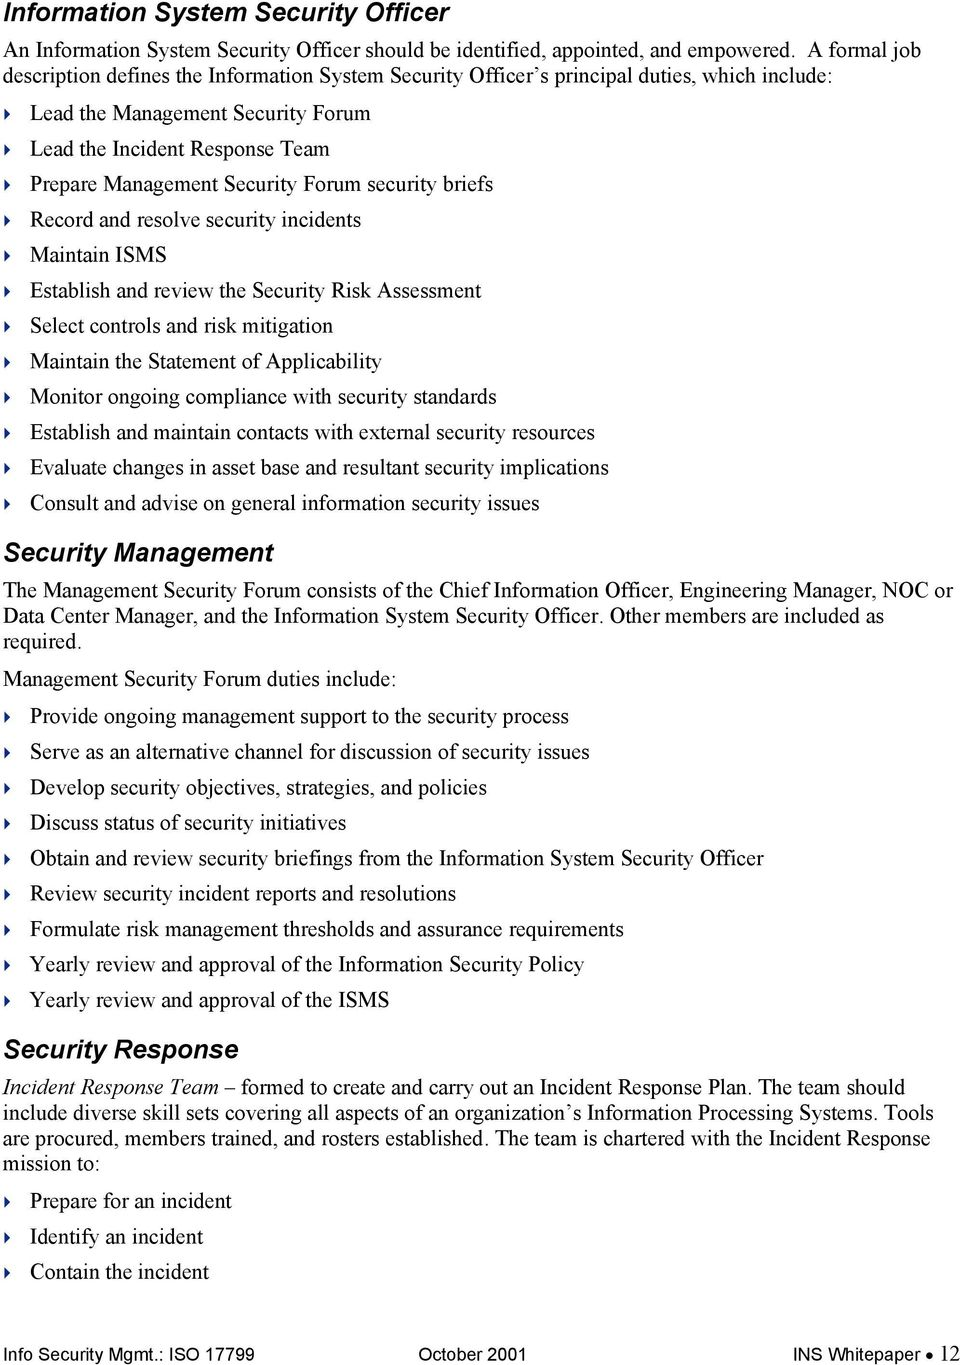 Security Forum security briefs Record and resolve security incidents Maintain ISMS Establish and review the Security Risk Assessment Select controls and risk mitigation Maintain the Statement of